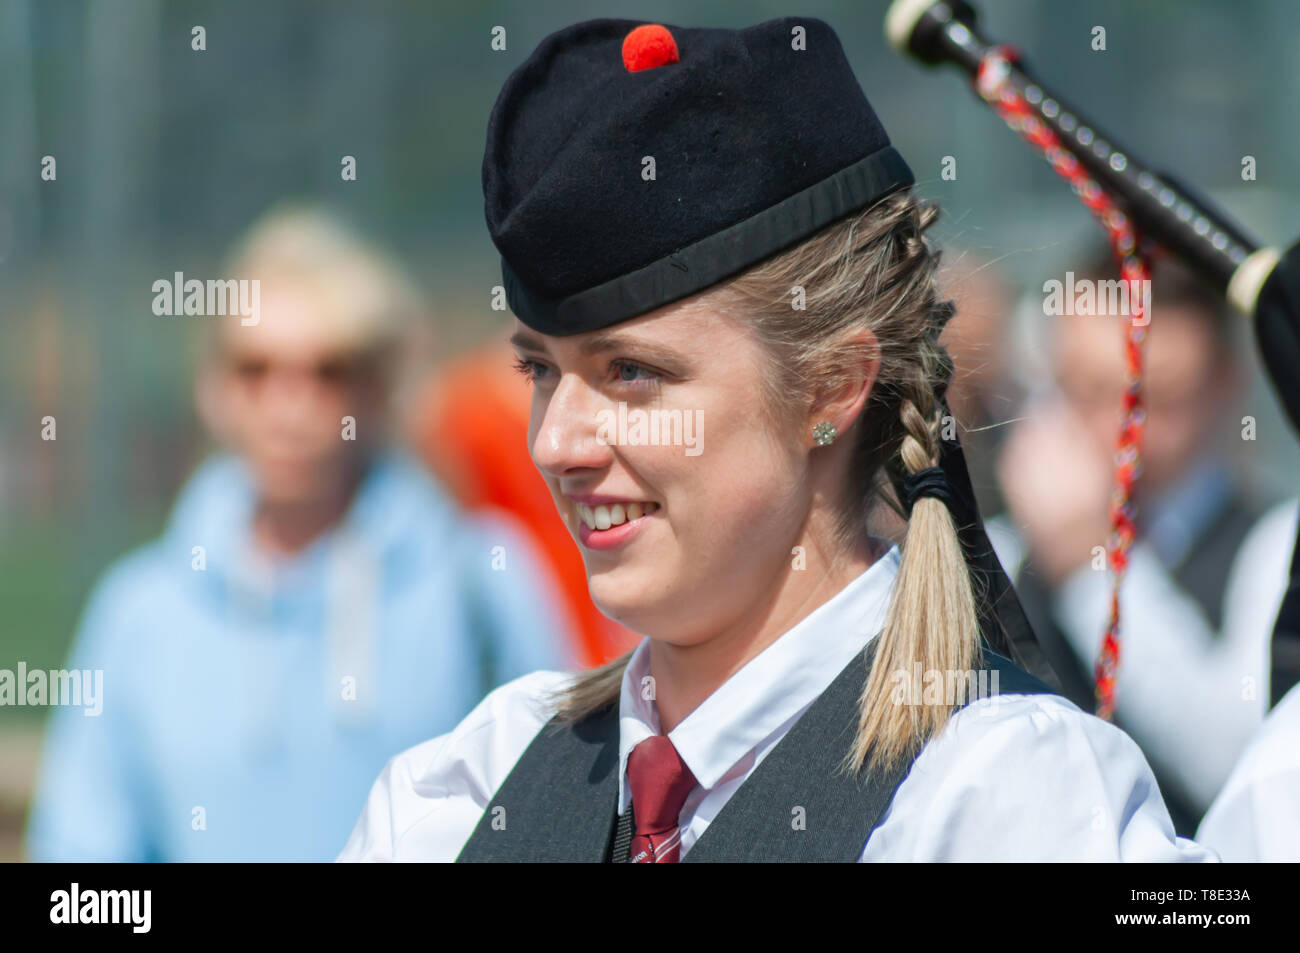 Gourock, Scotland, UK. 12th May, 2019. A pipe band member during the 63rd annual Gourock Highland Games which celebrates traditional Scottish culture with pipe band competitions, highland dancing, traditional highland games and is held in the picturesque setting of Battery Park.  Credit: Skully/Alamy Live News - Stock Image